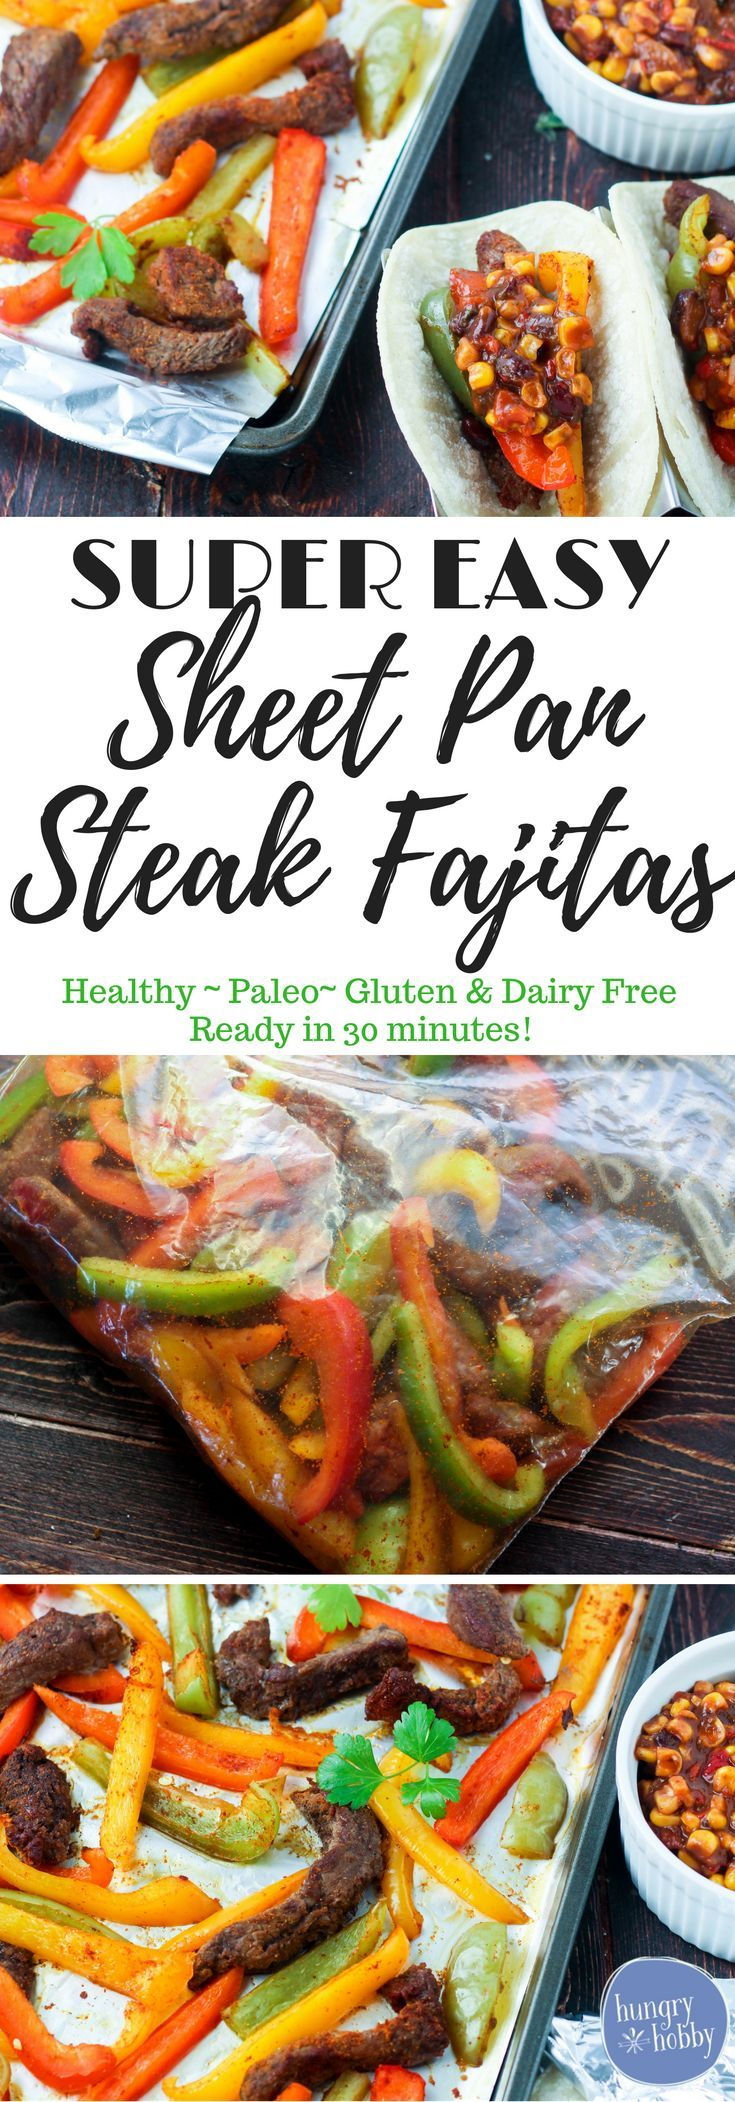 Super easy sheet pan steak fajitas are a quick healthy one dish meal made in no time with little clean up!  Paleo, Gluten and Dairy Free! via @hungryhobby